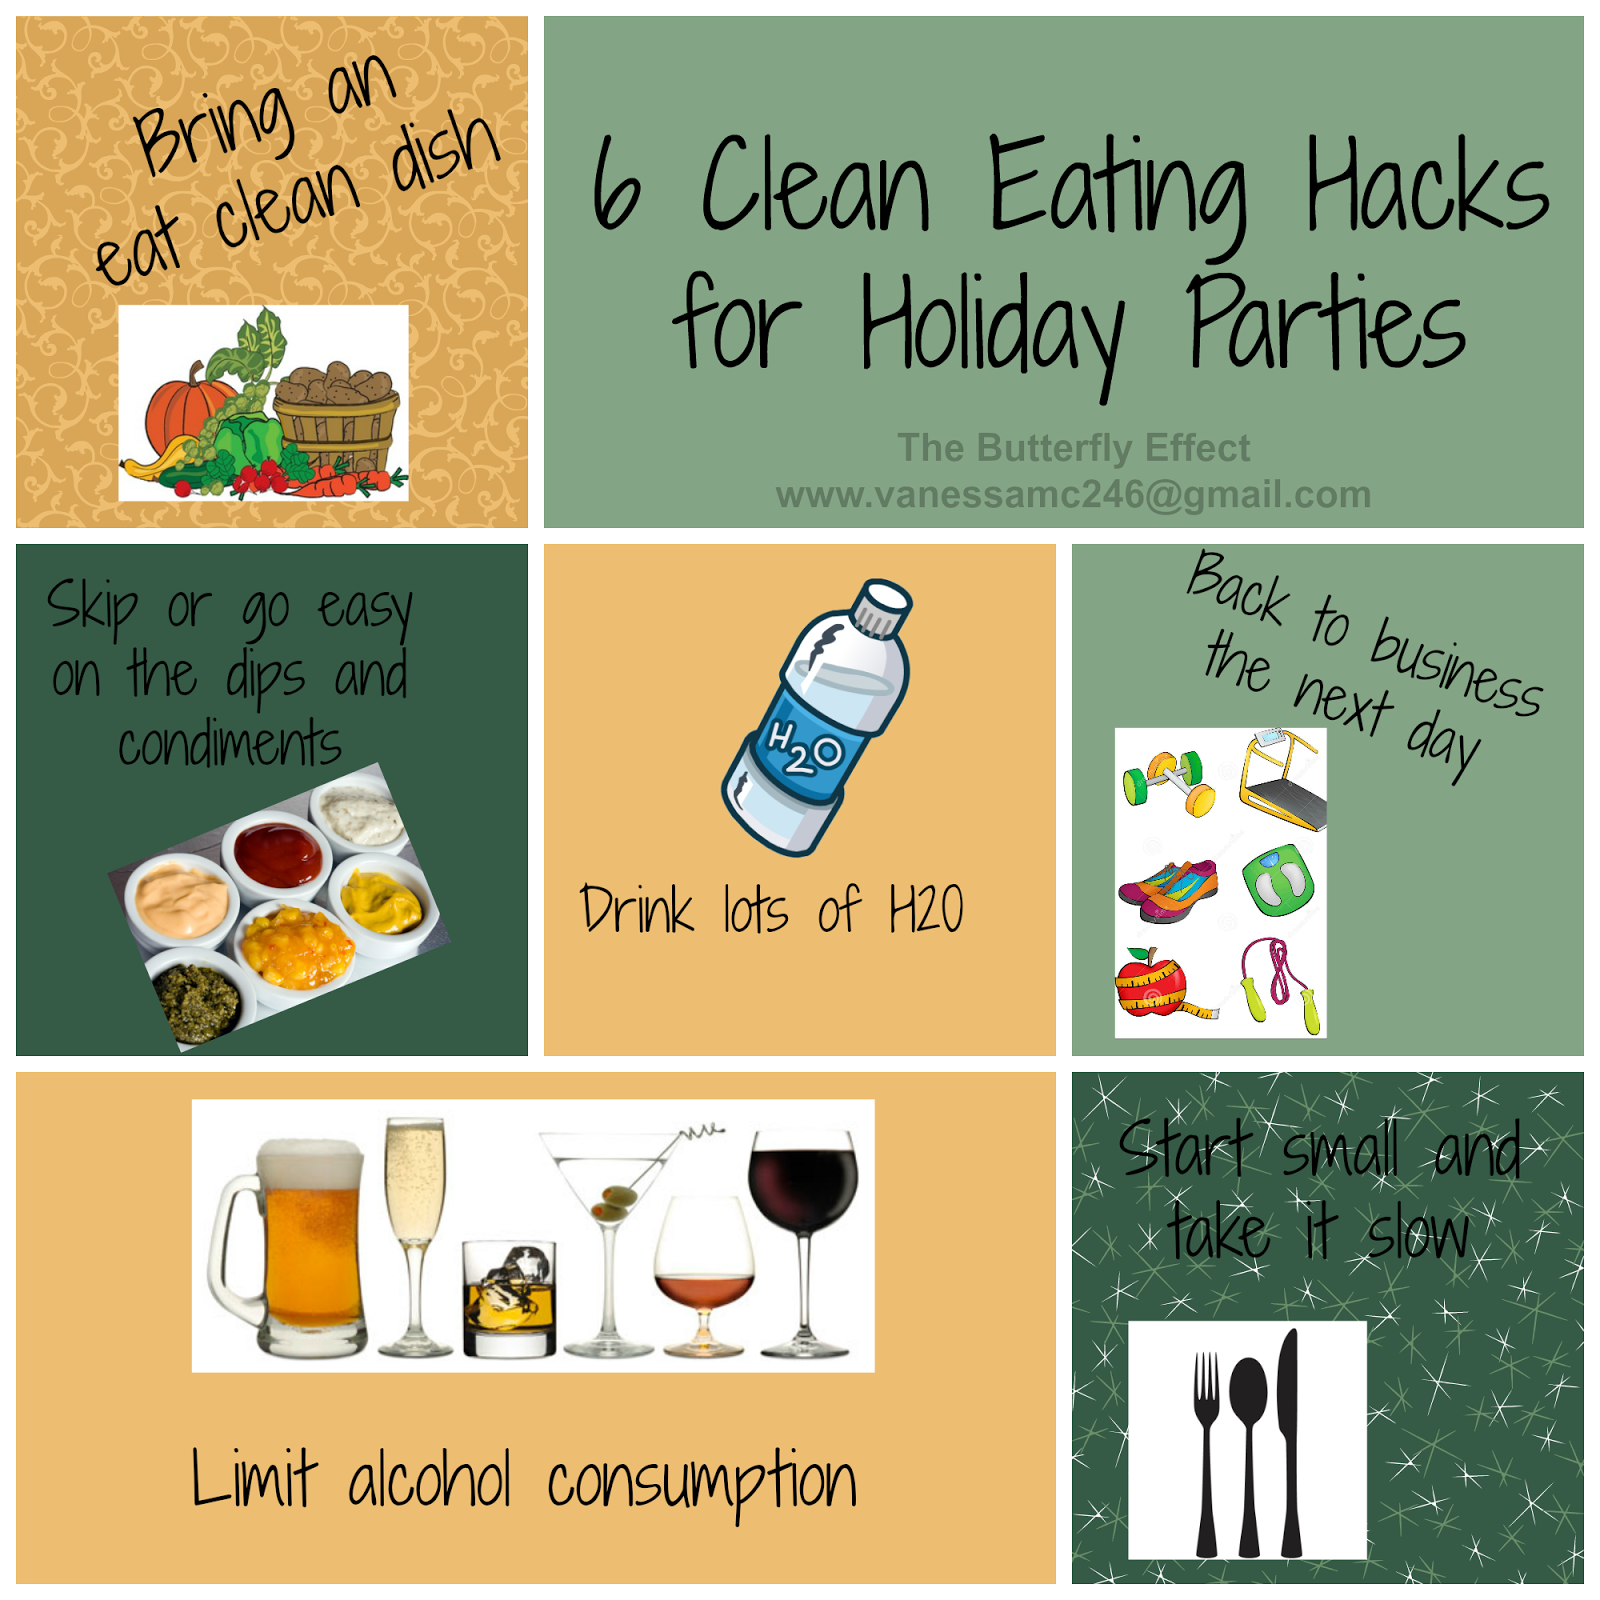 6 Clean Eating Hacks for Holiday parties, The Butterlfy Effect, Vanessa McLaughlin